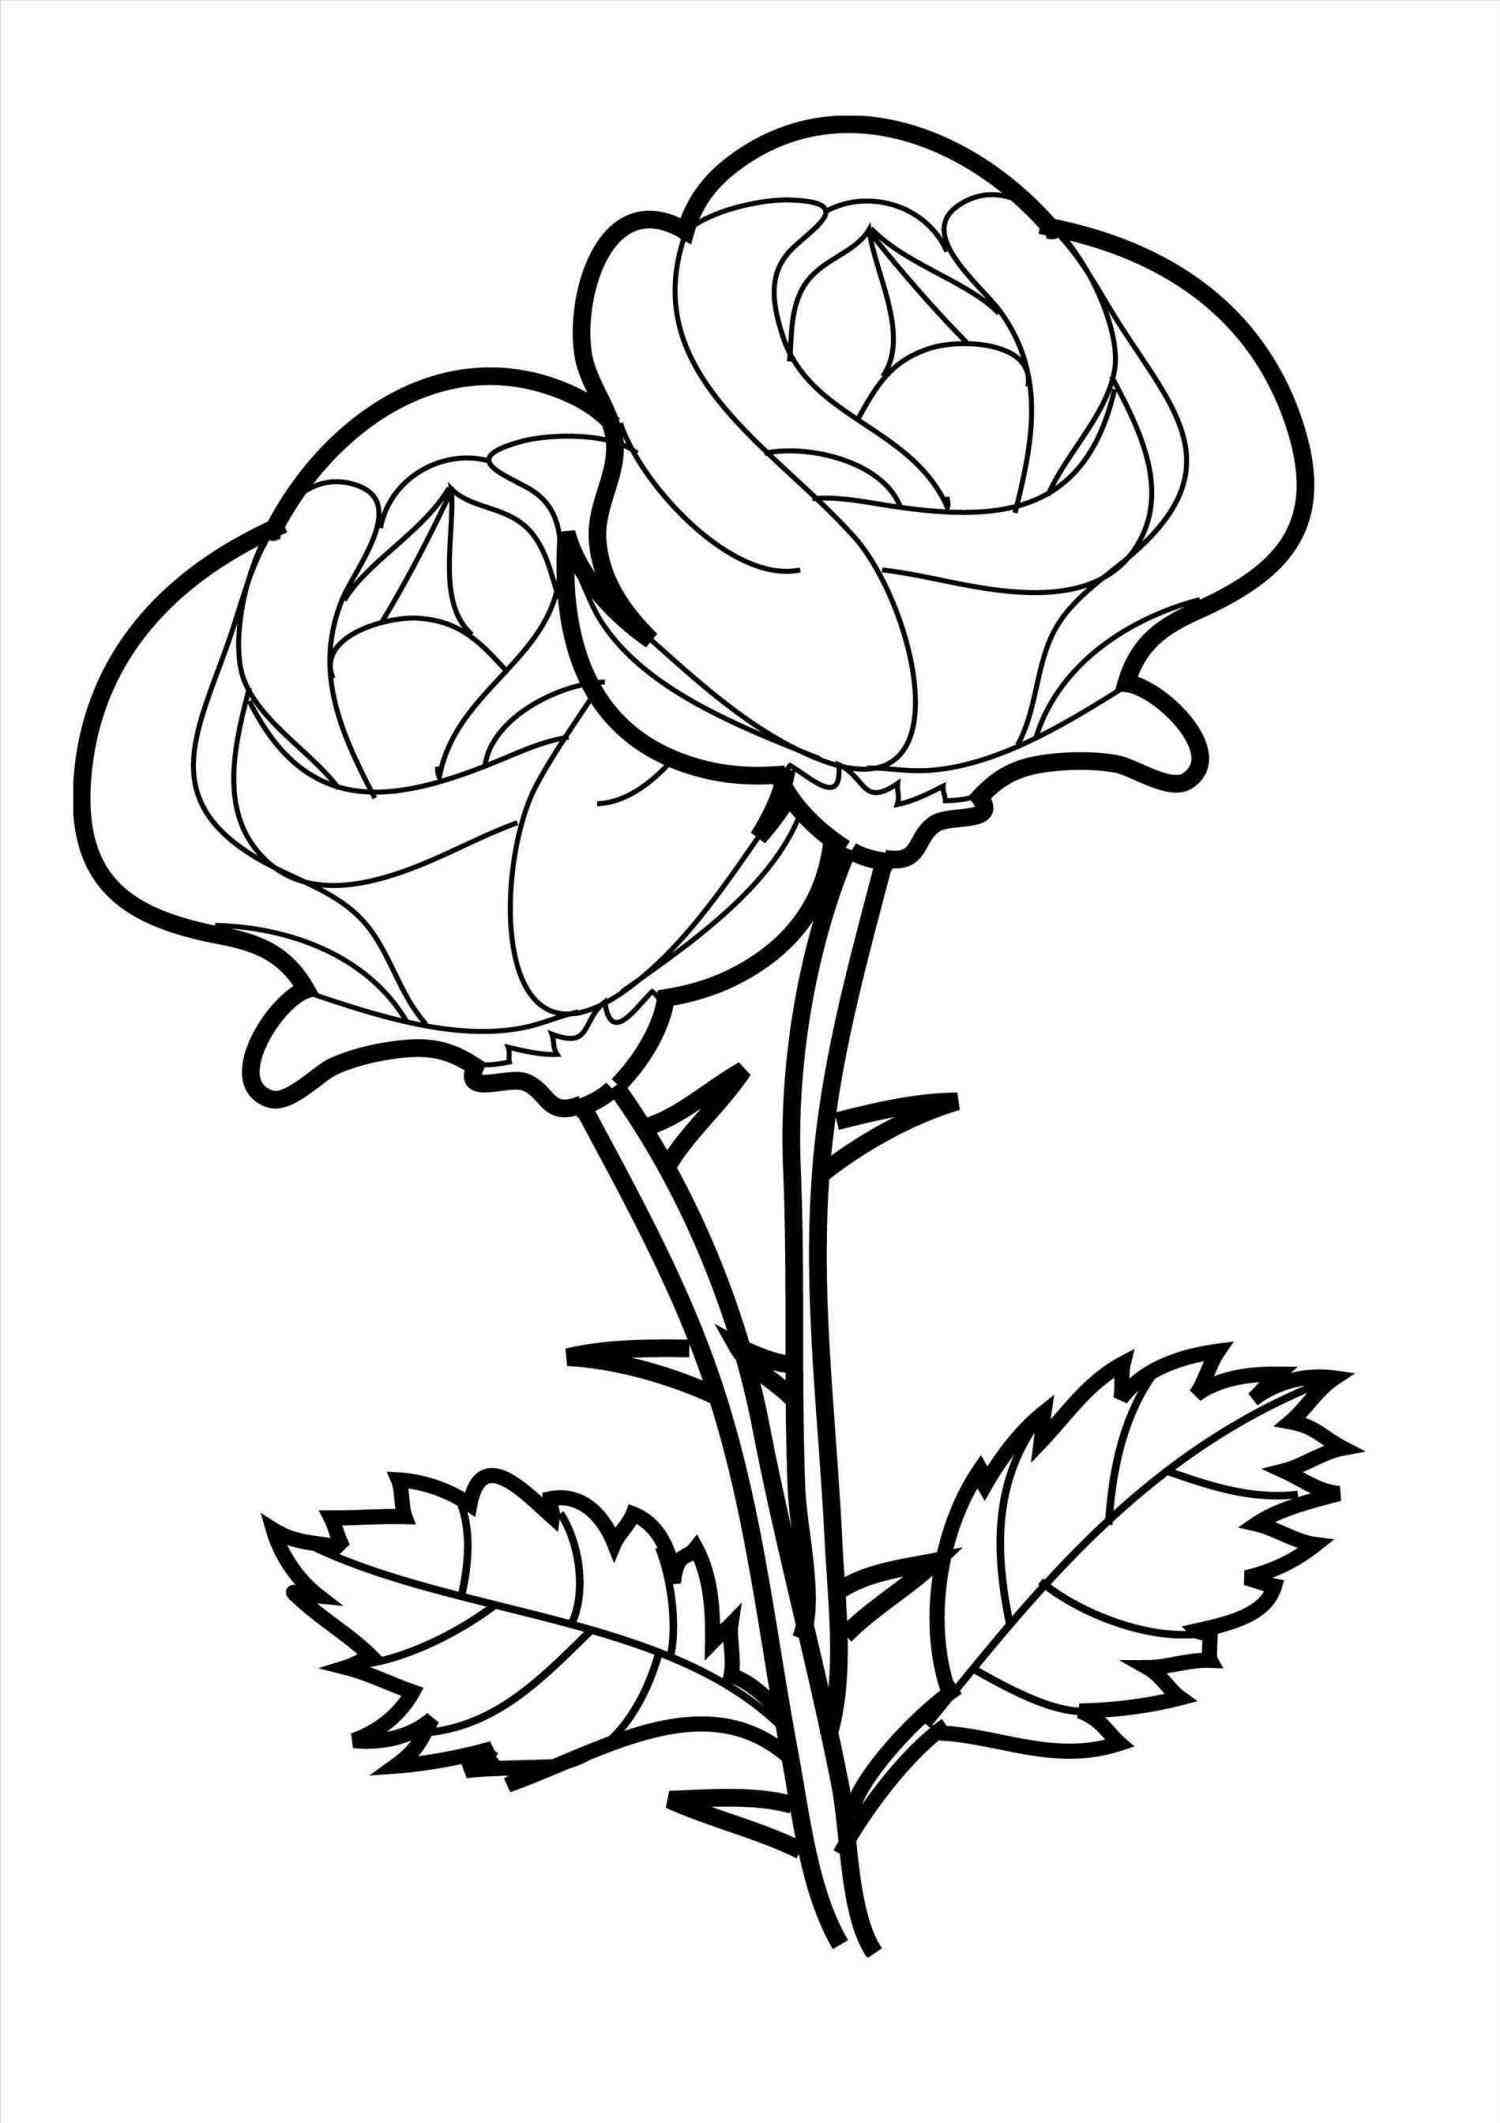 Flower Bouquet Clipart Black And White Free Download Best Flower